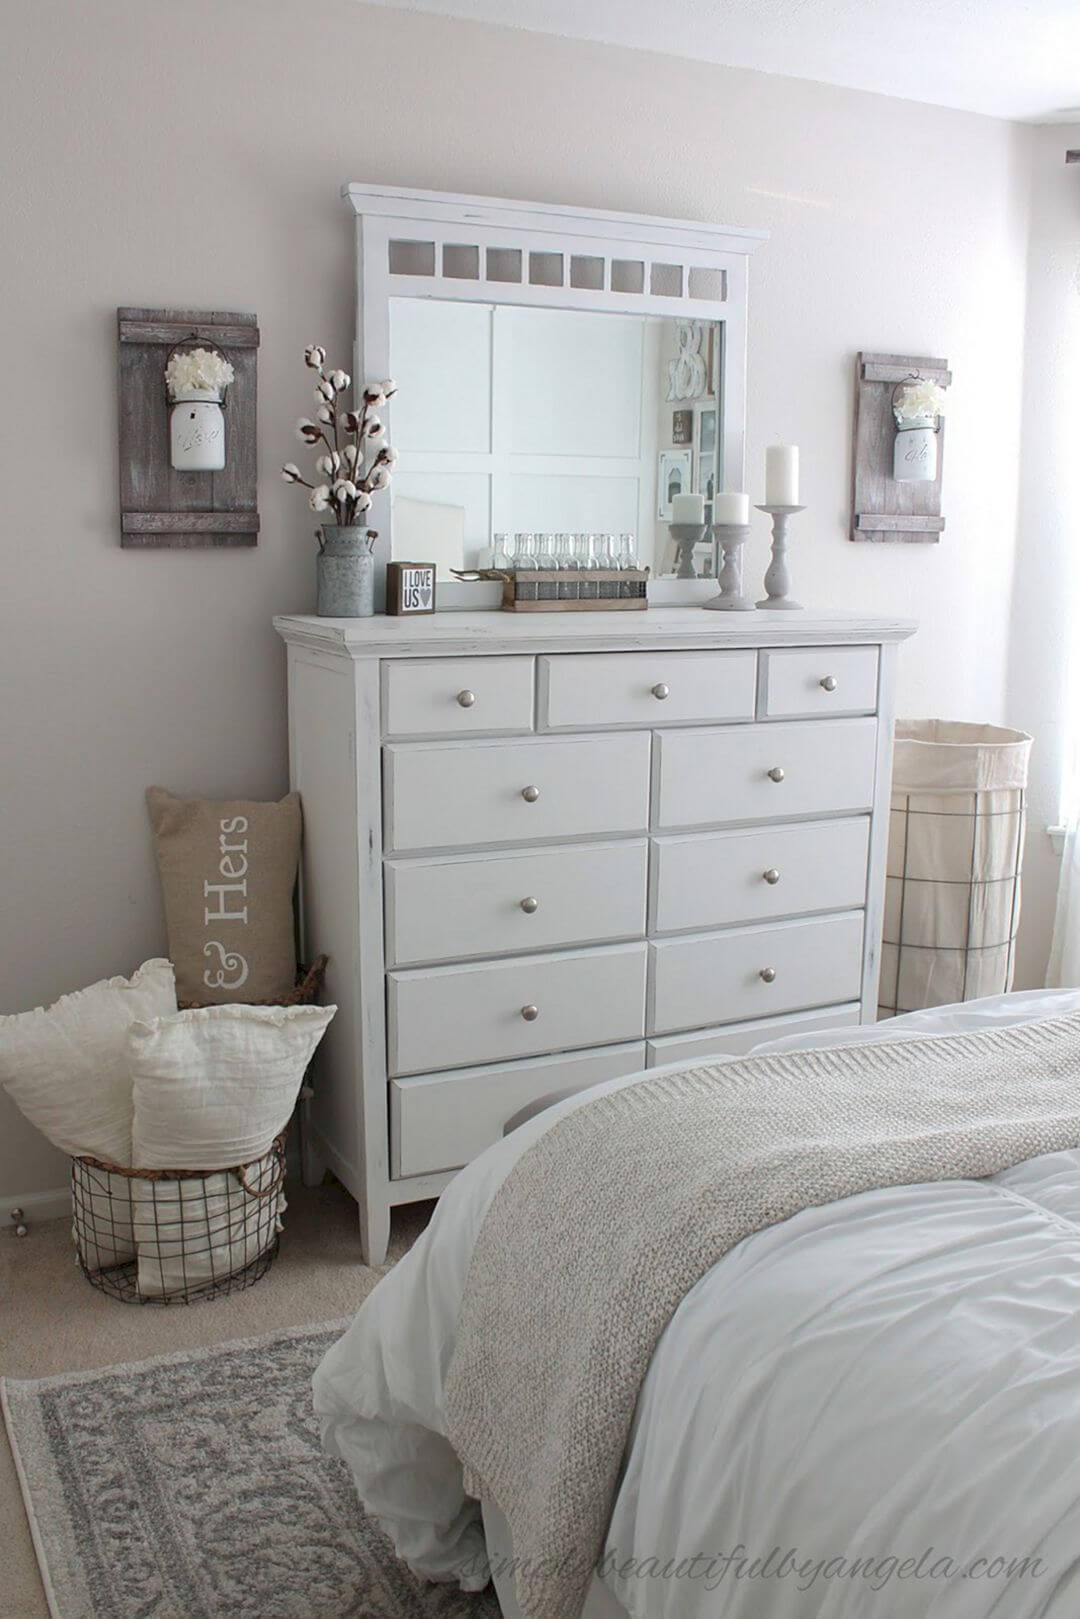 Transforming a Wood Dresser with Rustic Paint